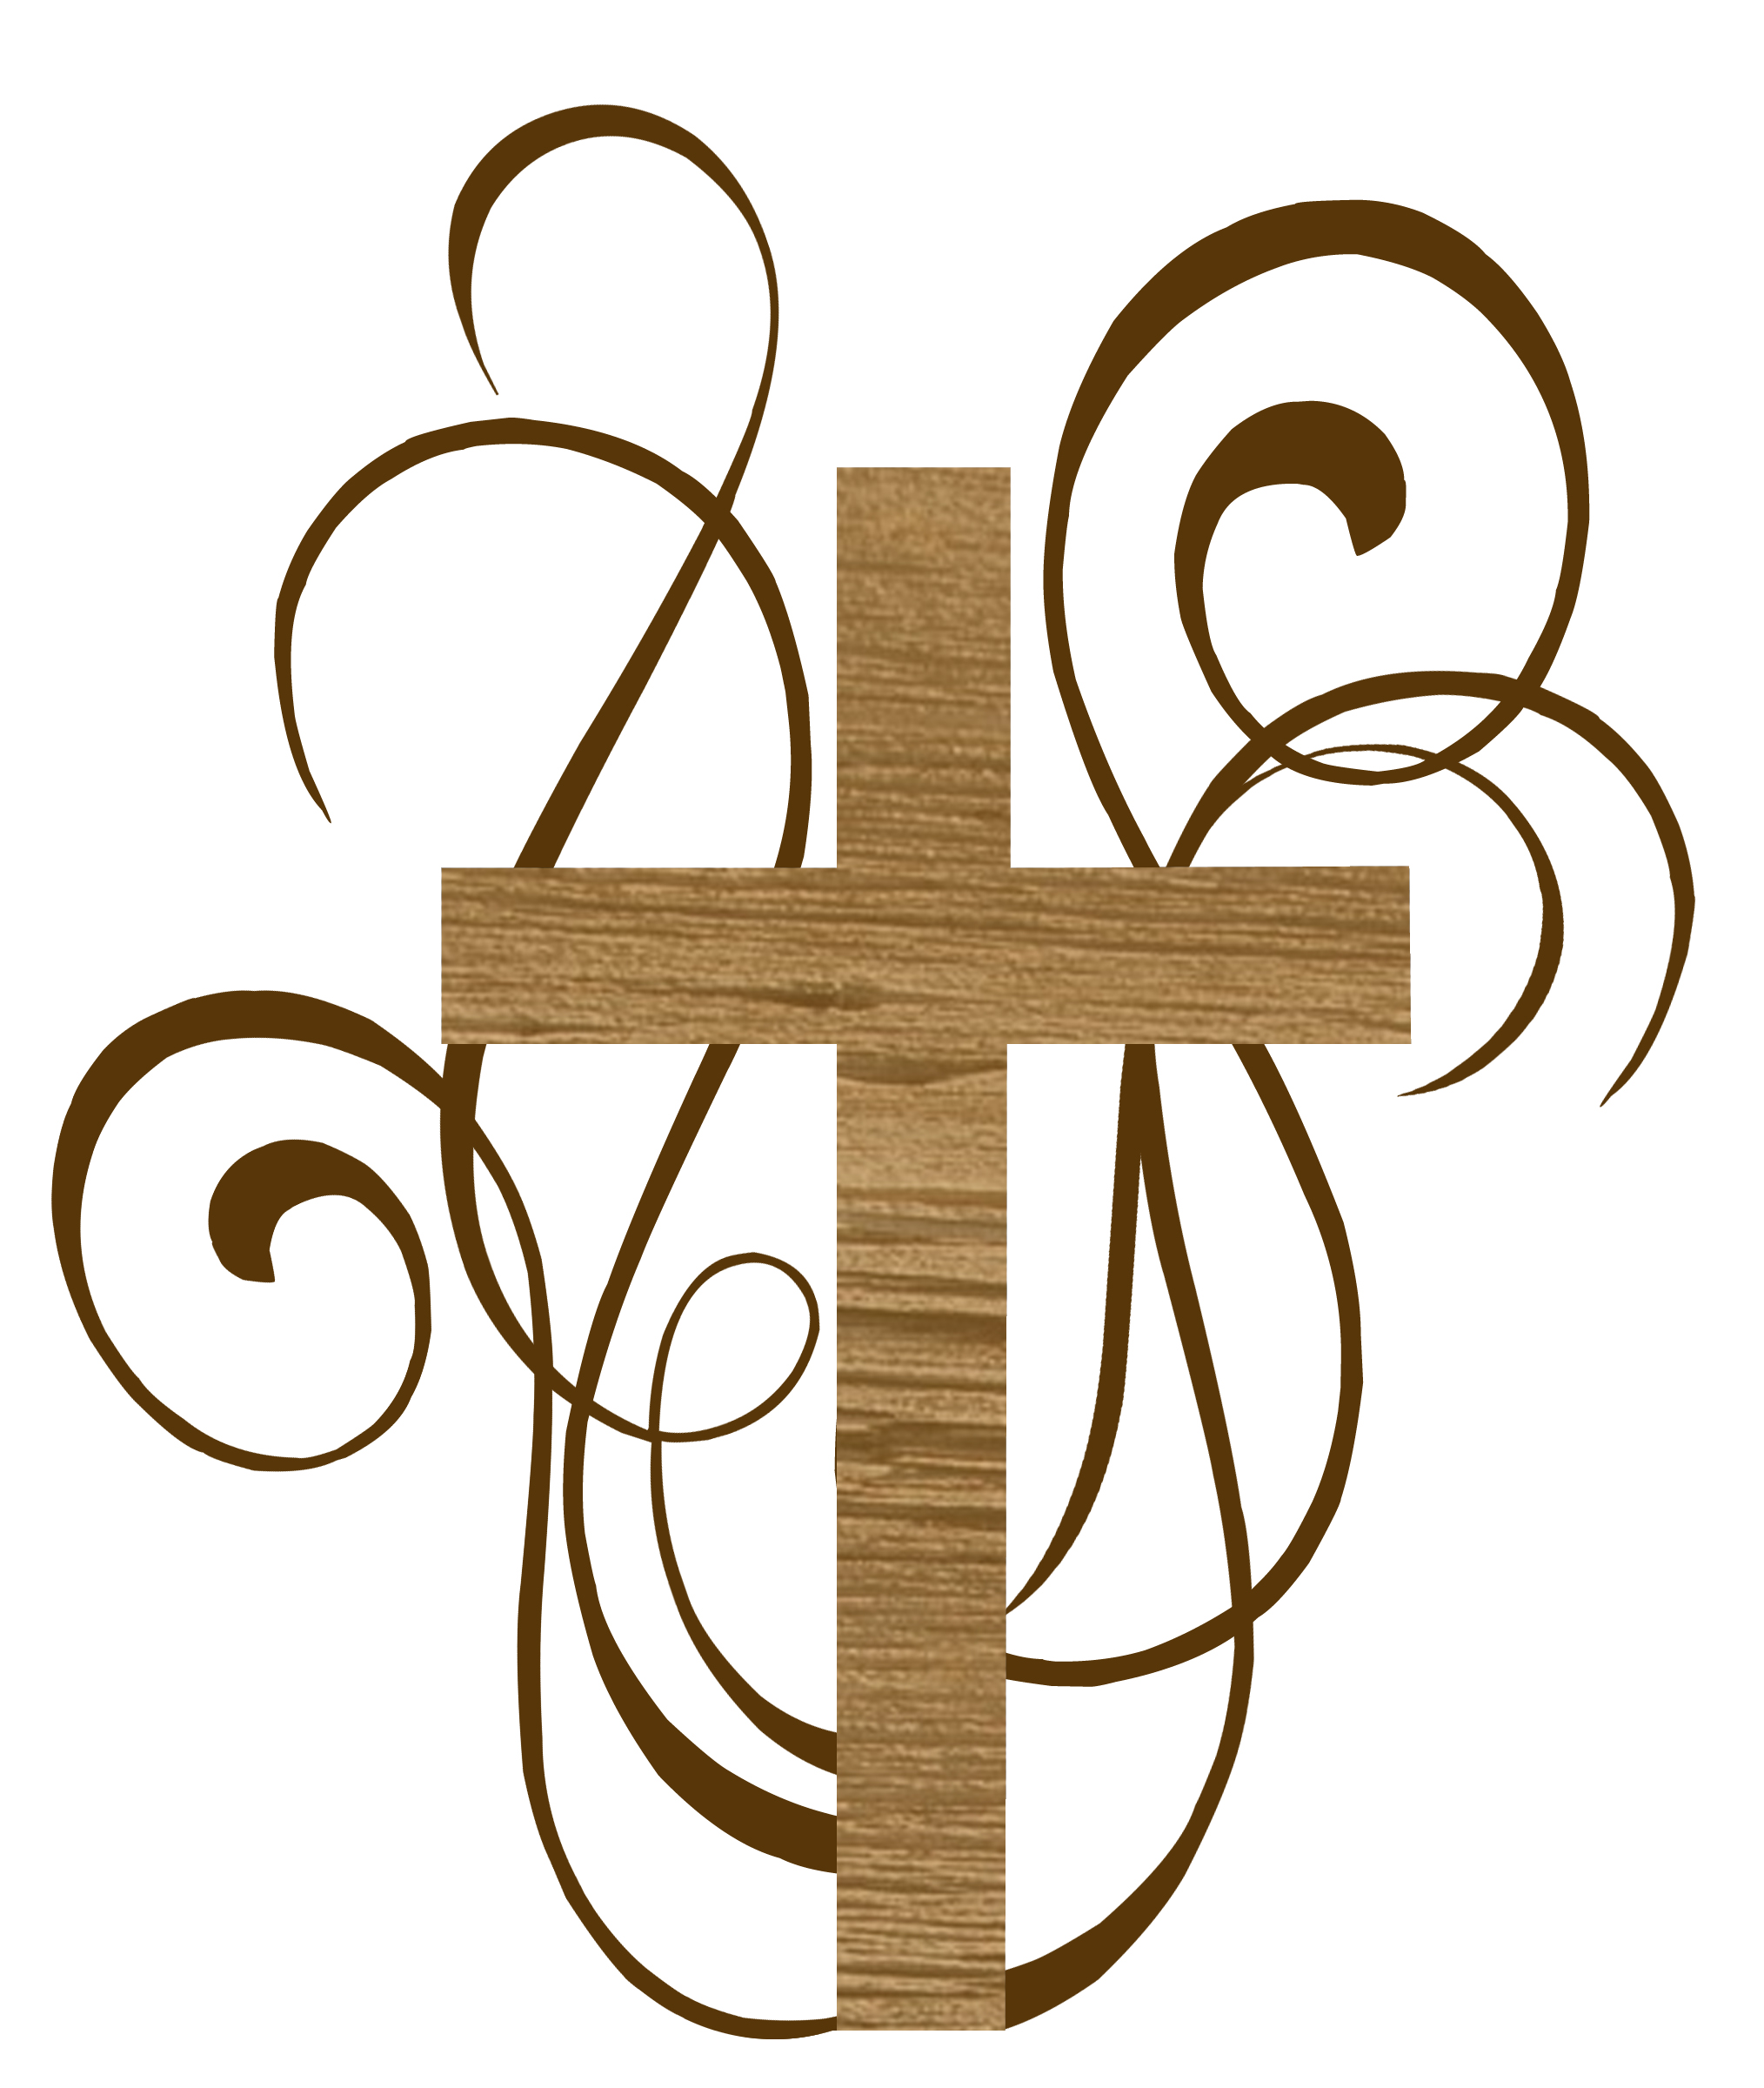 Fancy gold cross clipart - ClipartFest vector library download